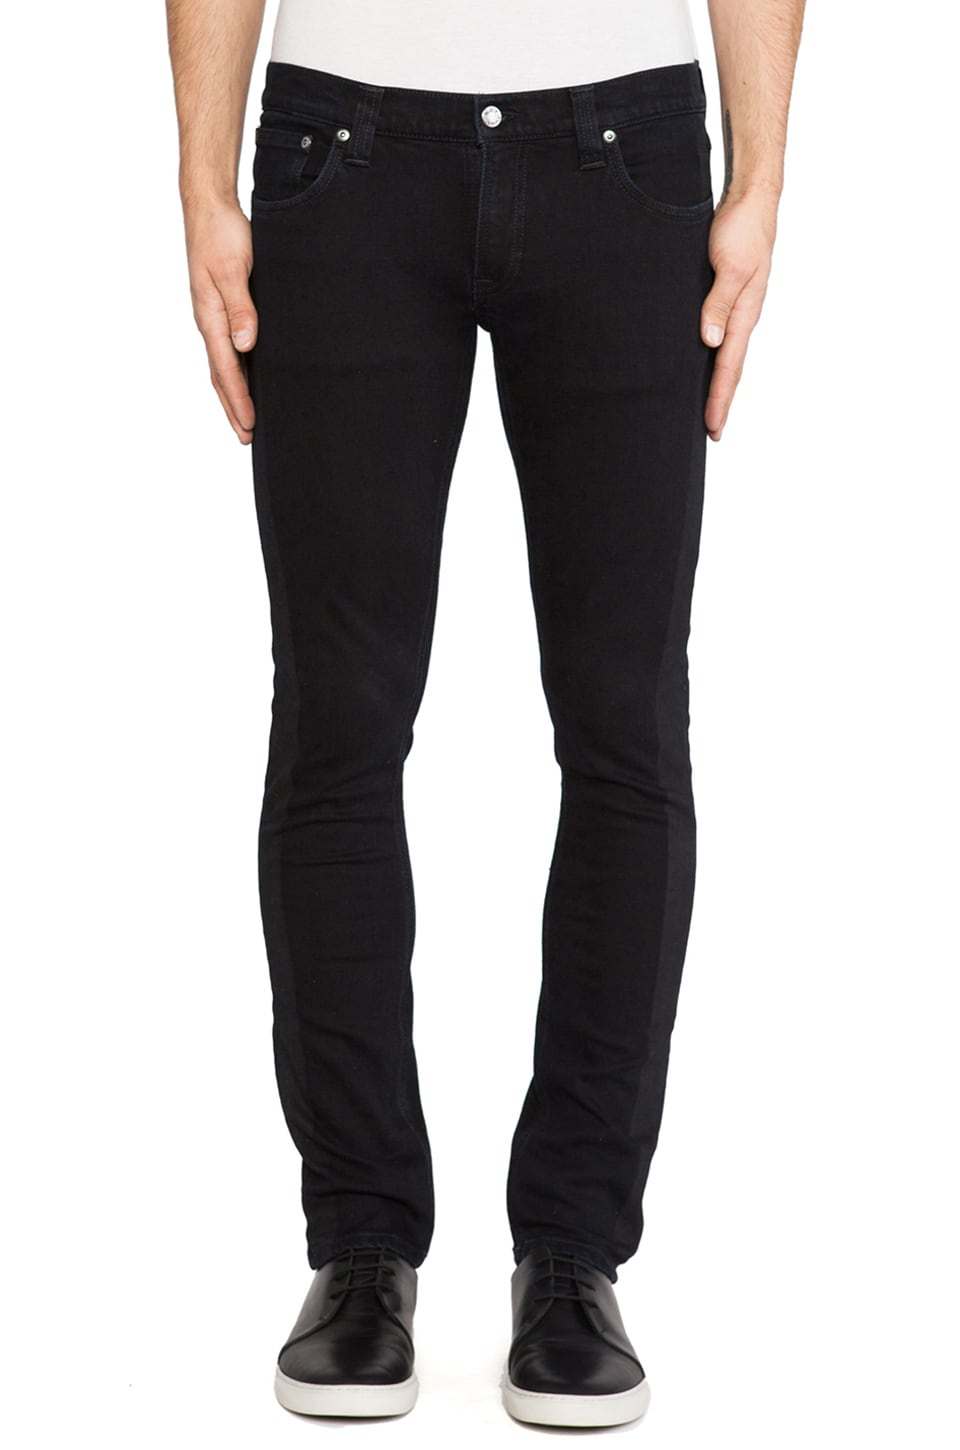 Nudie Jeans Tight Long John in Org. Black on Black